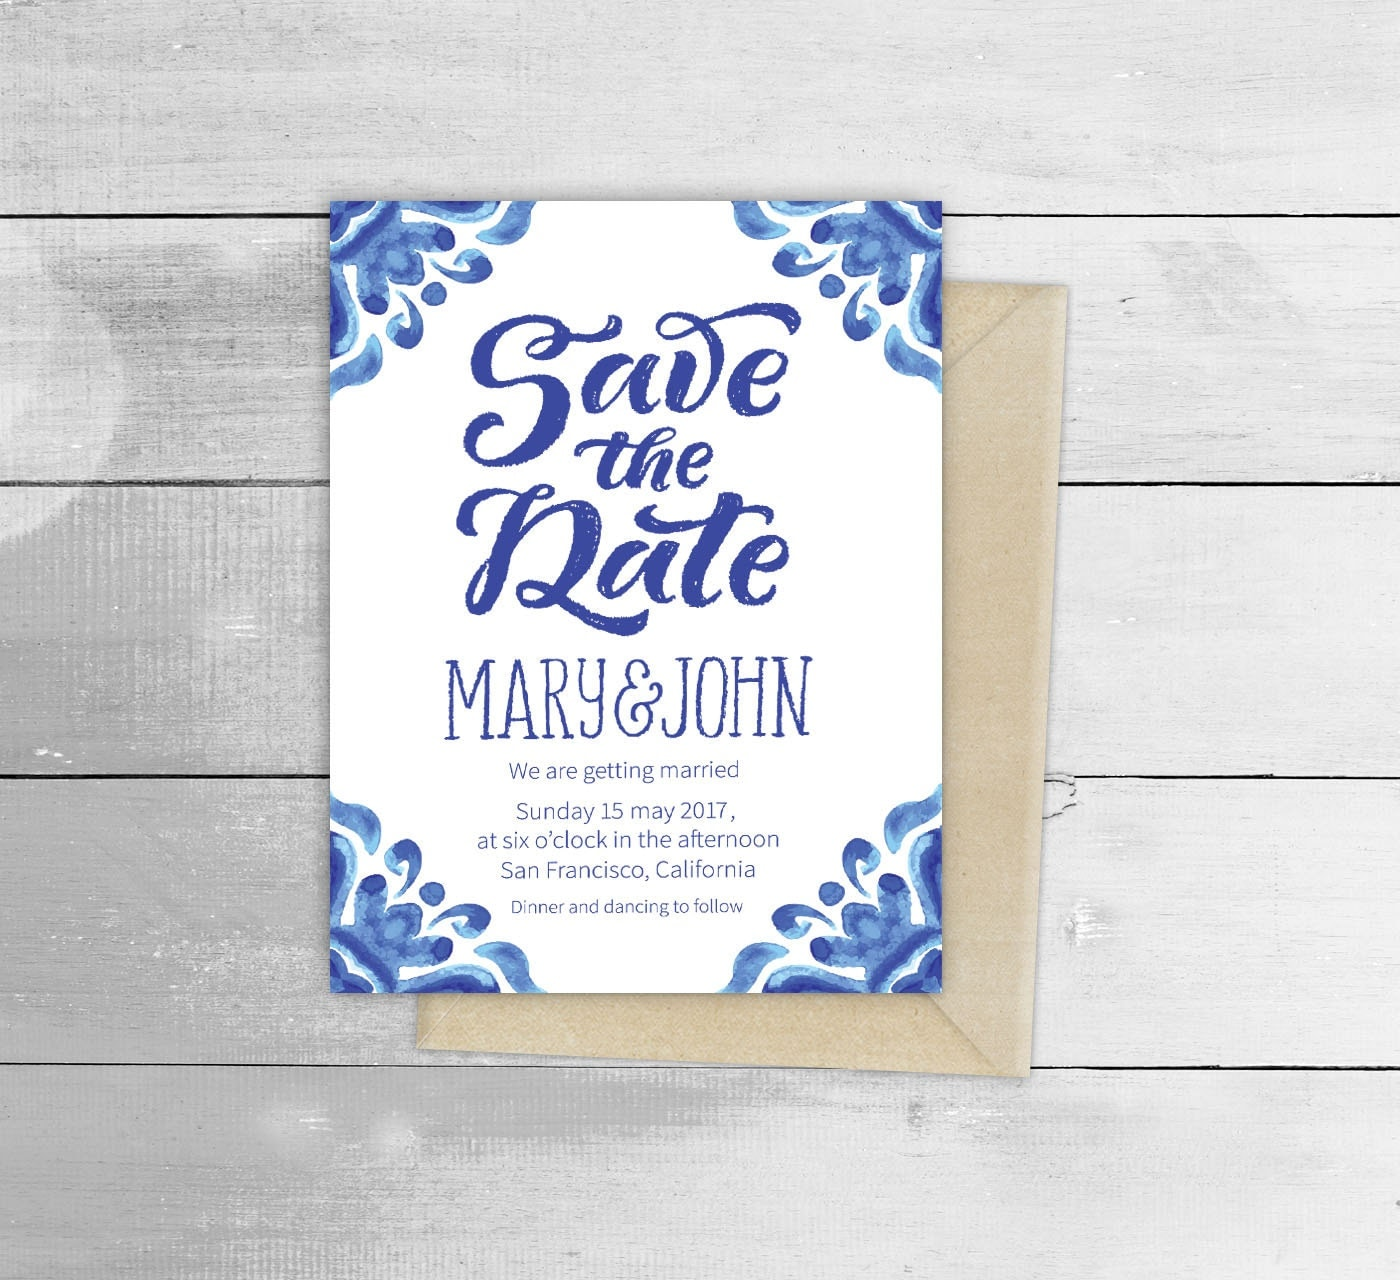 talavera spanish tile mexican fiesta wedding invitations in spanish Talavera Spanish Tile Mexican Fiesta Wedding Invitation zoom